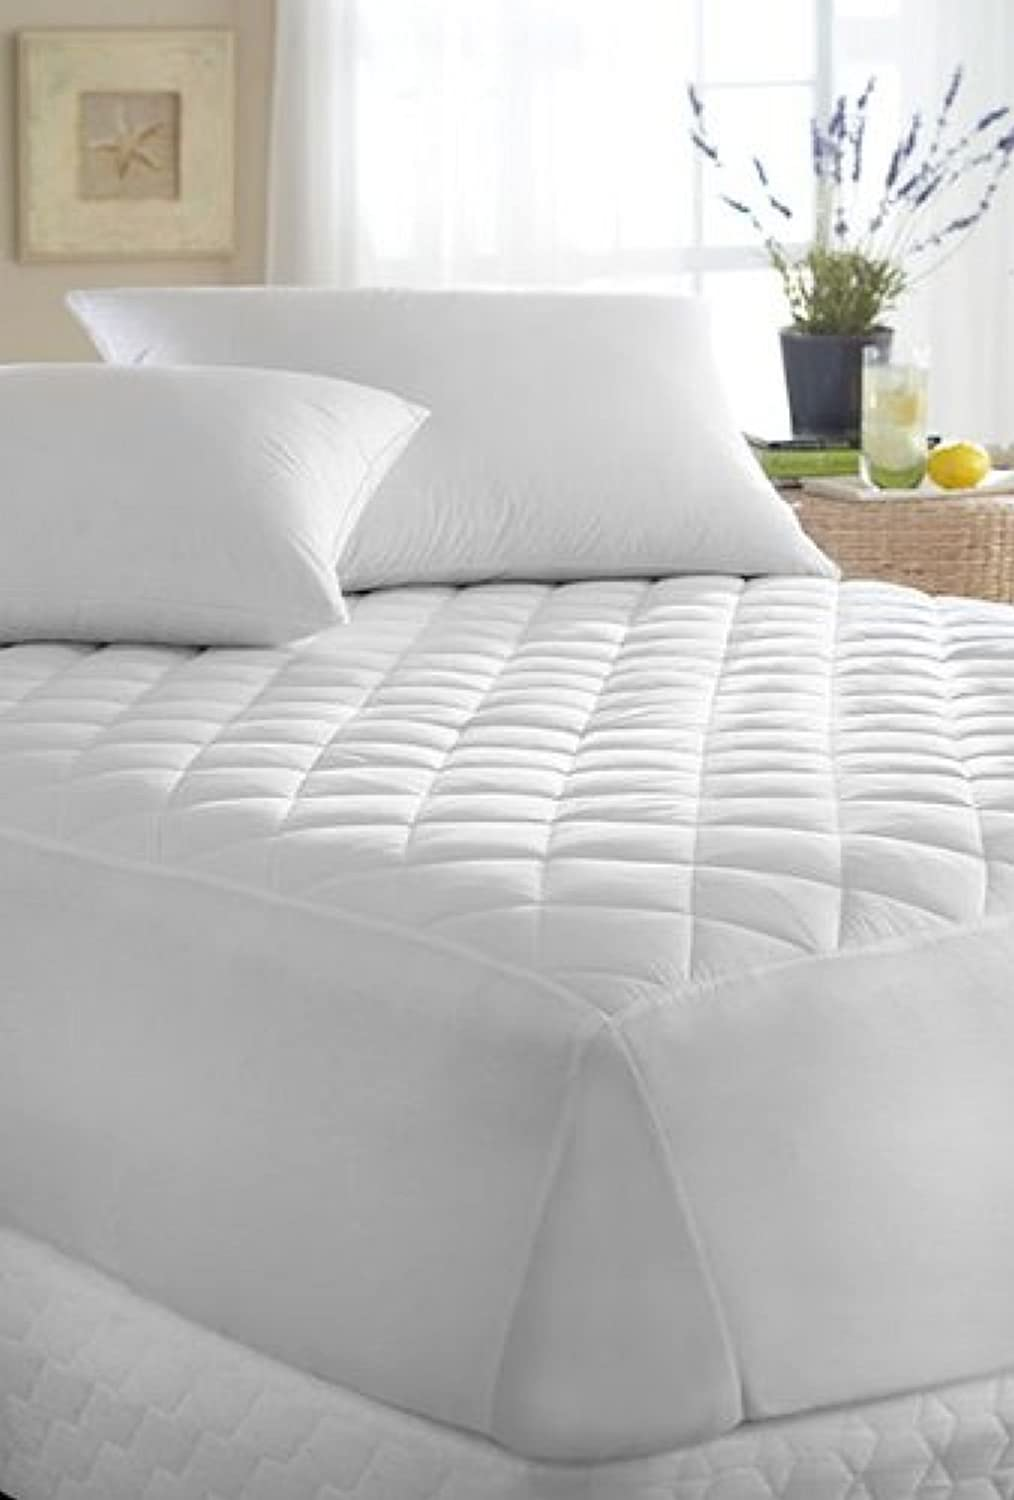 Max 42% OFF New products, world's highest quality popular! Downright Luxurious Super Fill Pad Mattress